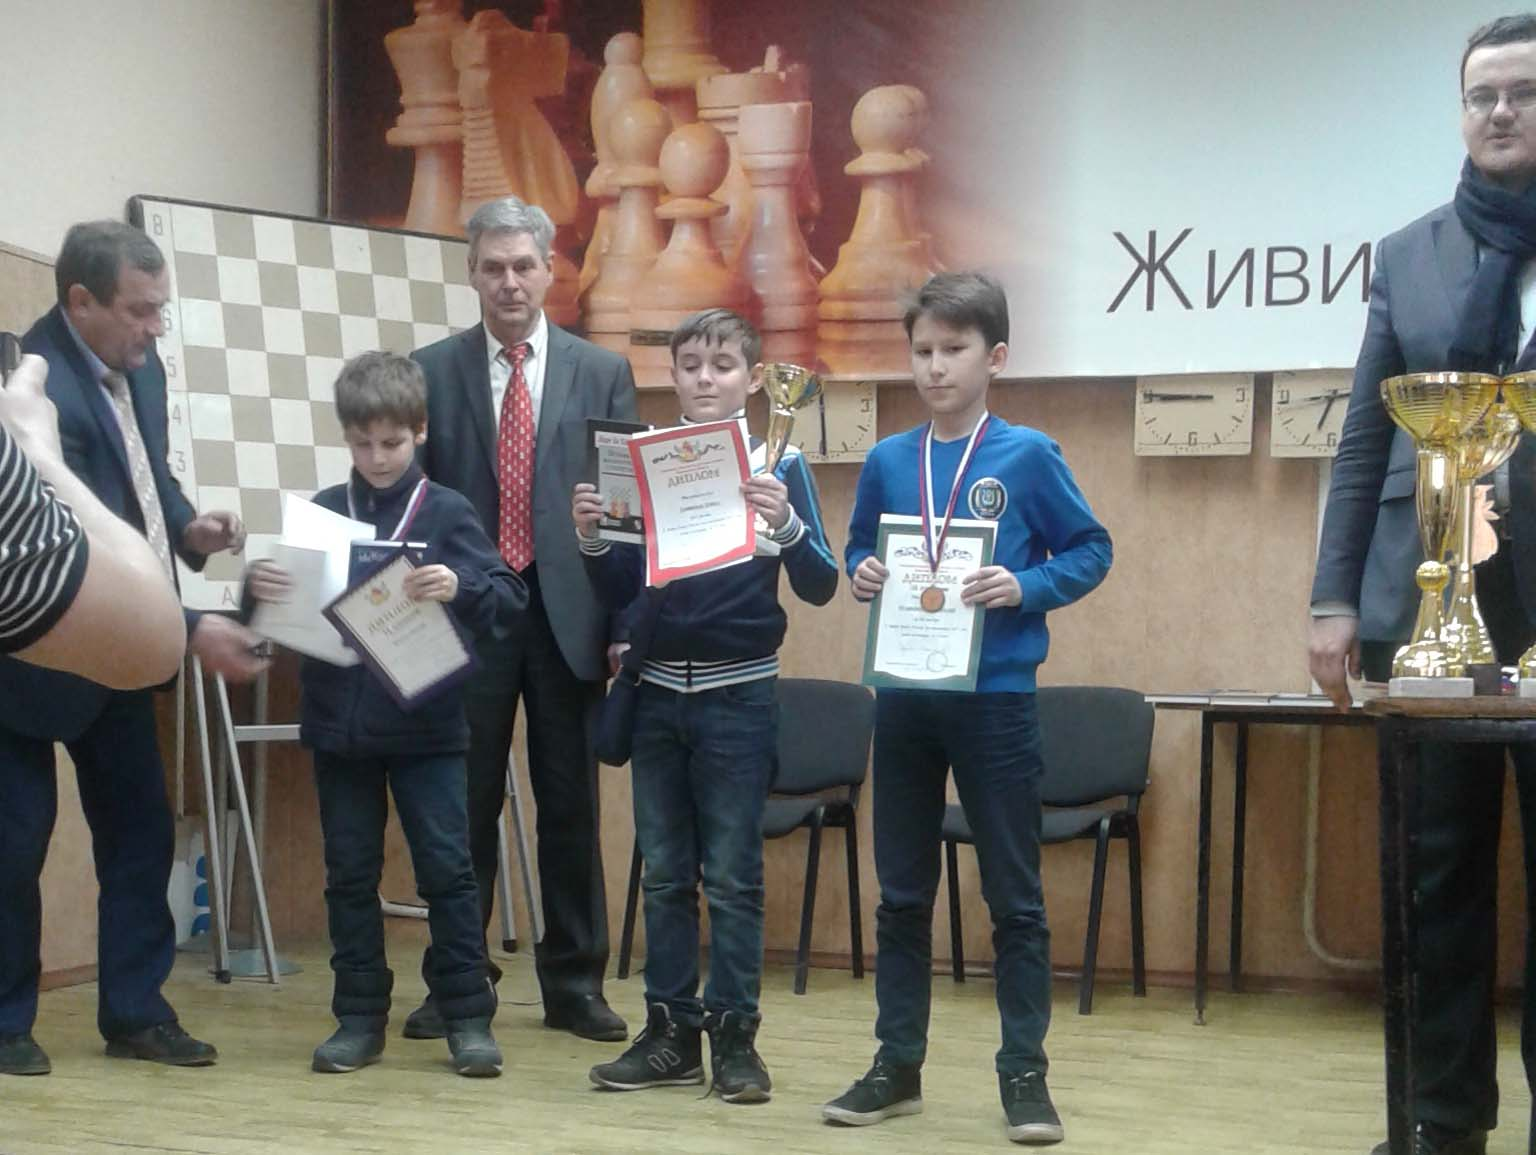 http://72chess.ru/sites/default/files/2017/3/voroneg/2.jpg